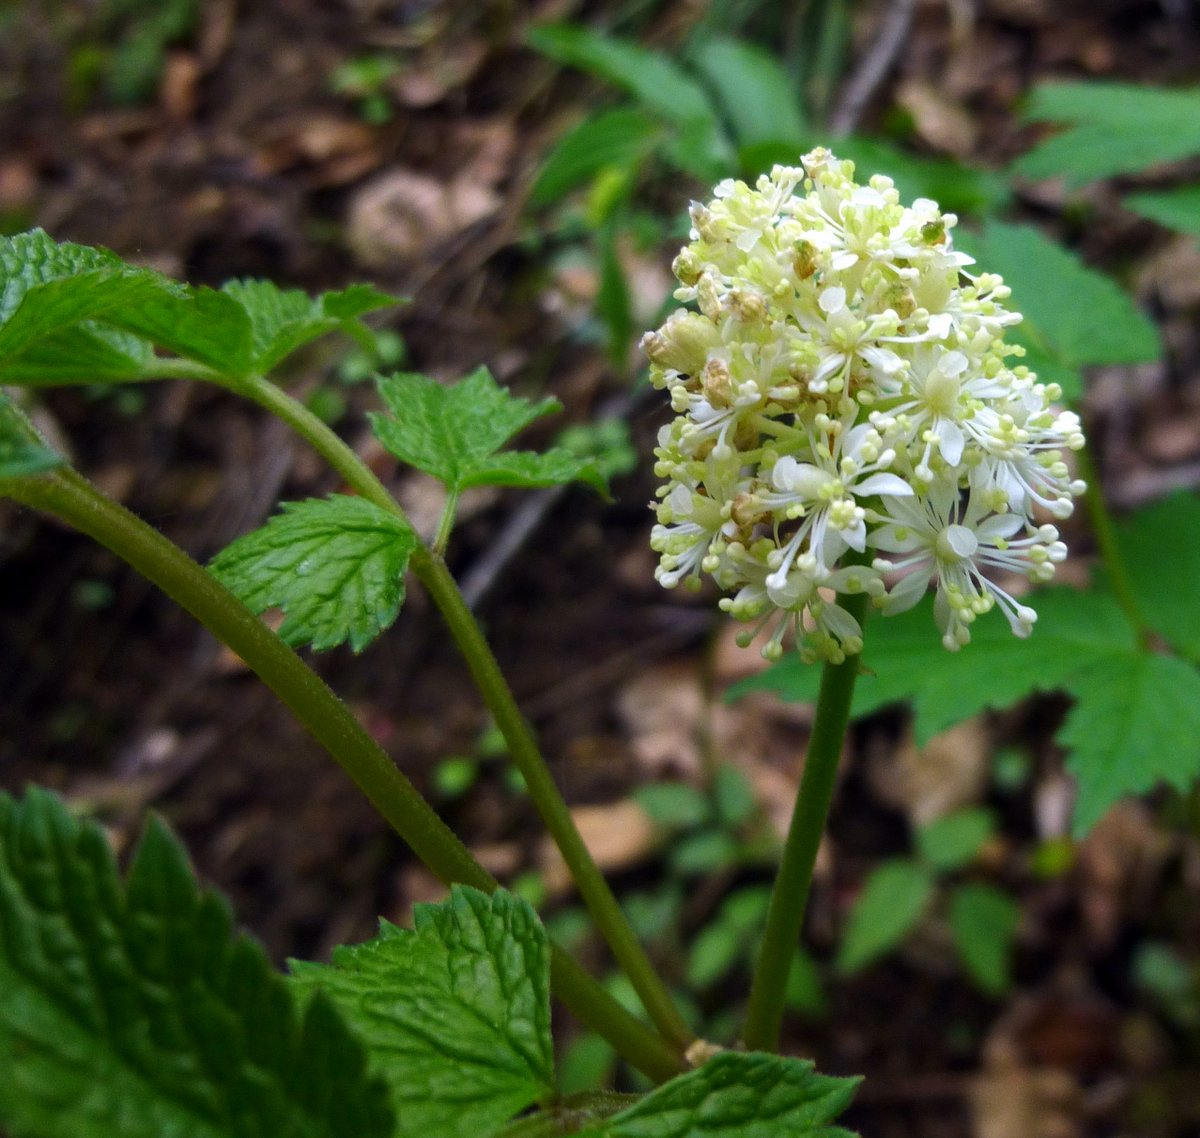 6. Red Baneberry Blossoms